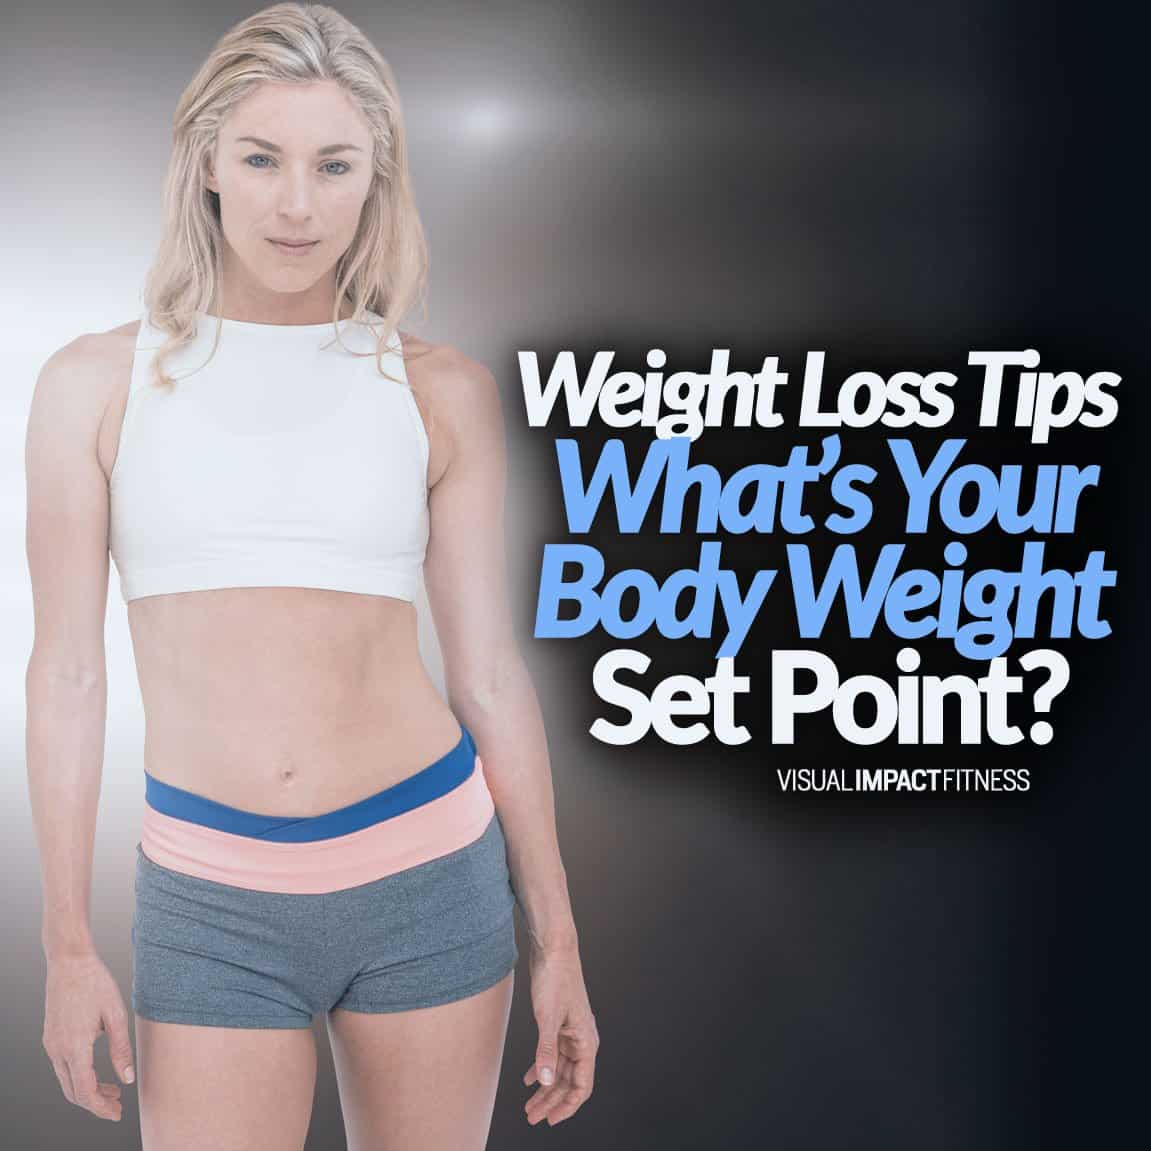 What's Your Body Weight Set Point